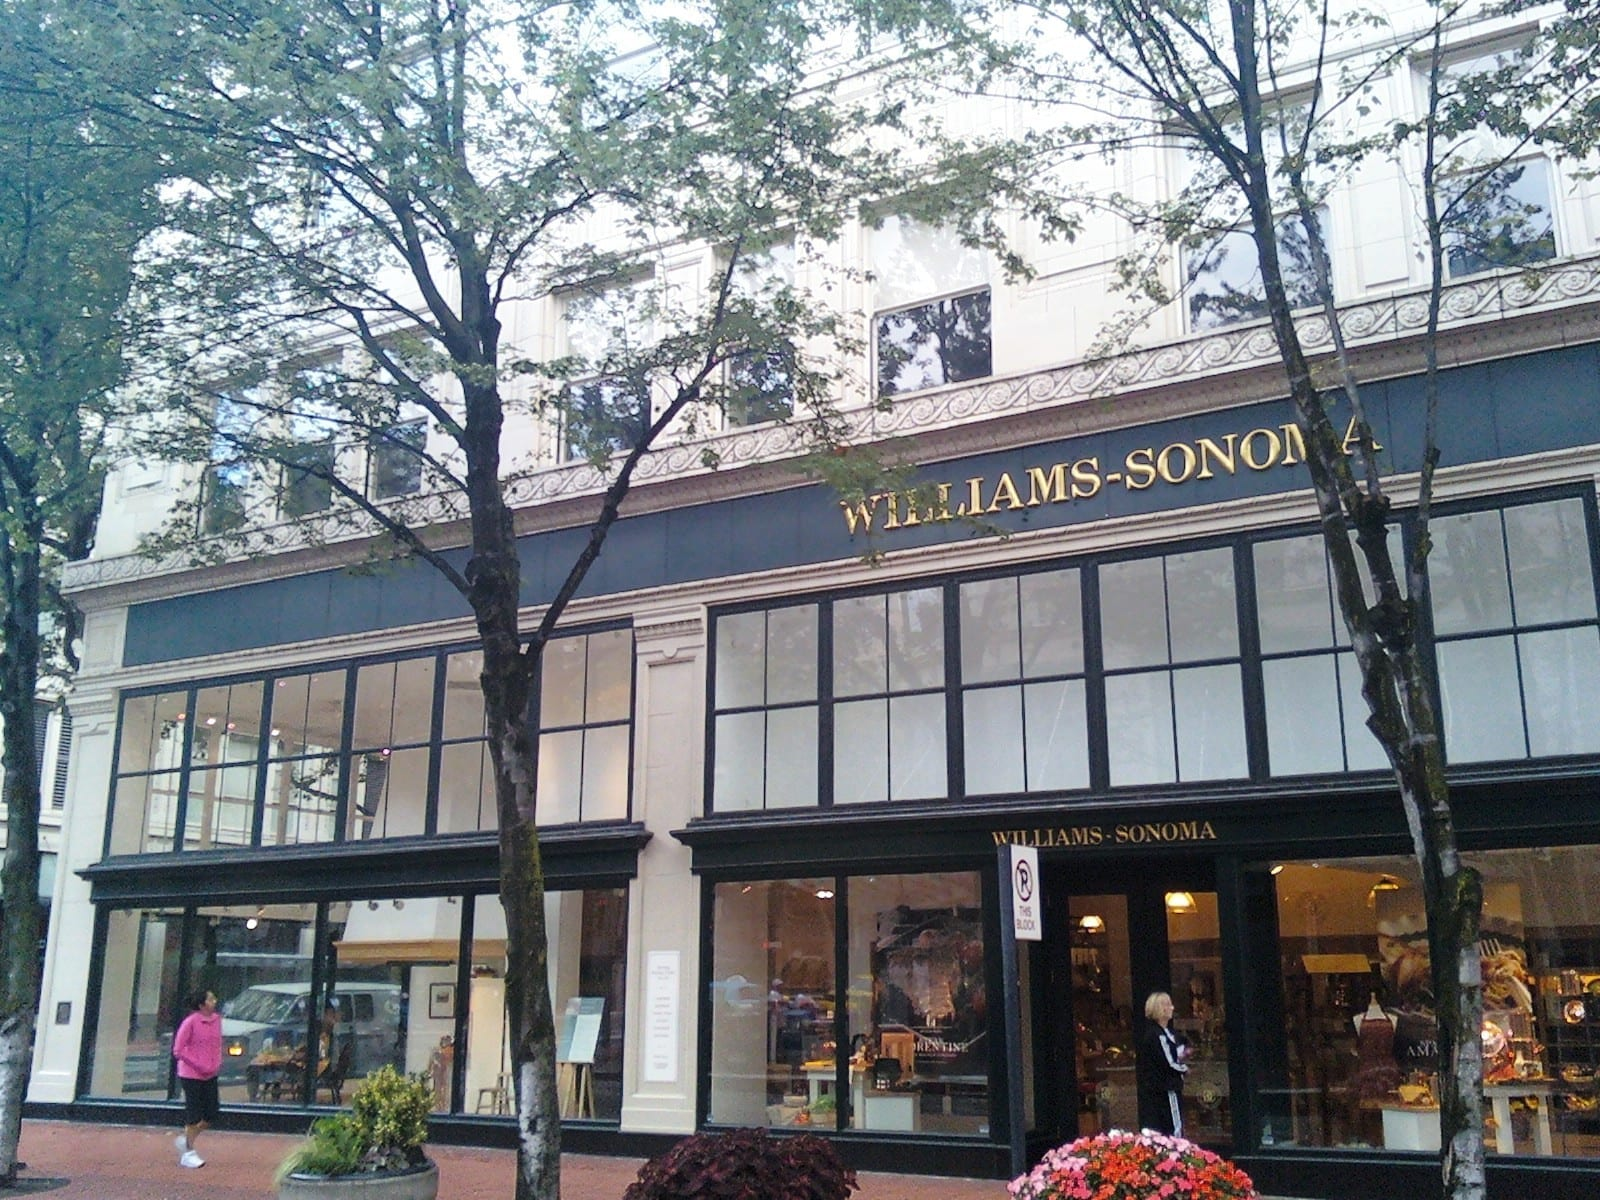 Boutique Storefront Windows - Williams-Sonoma